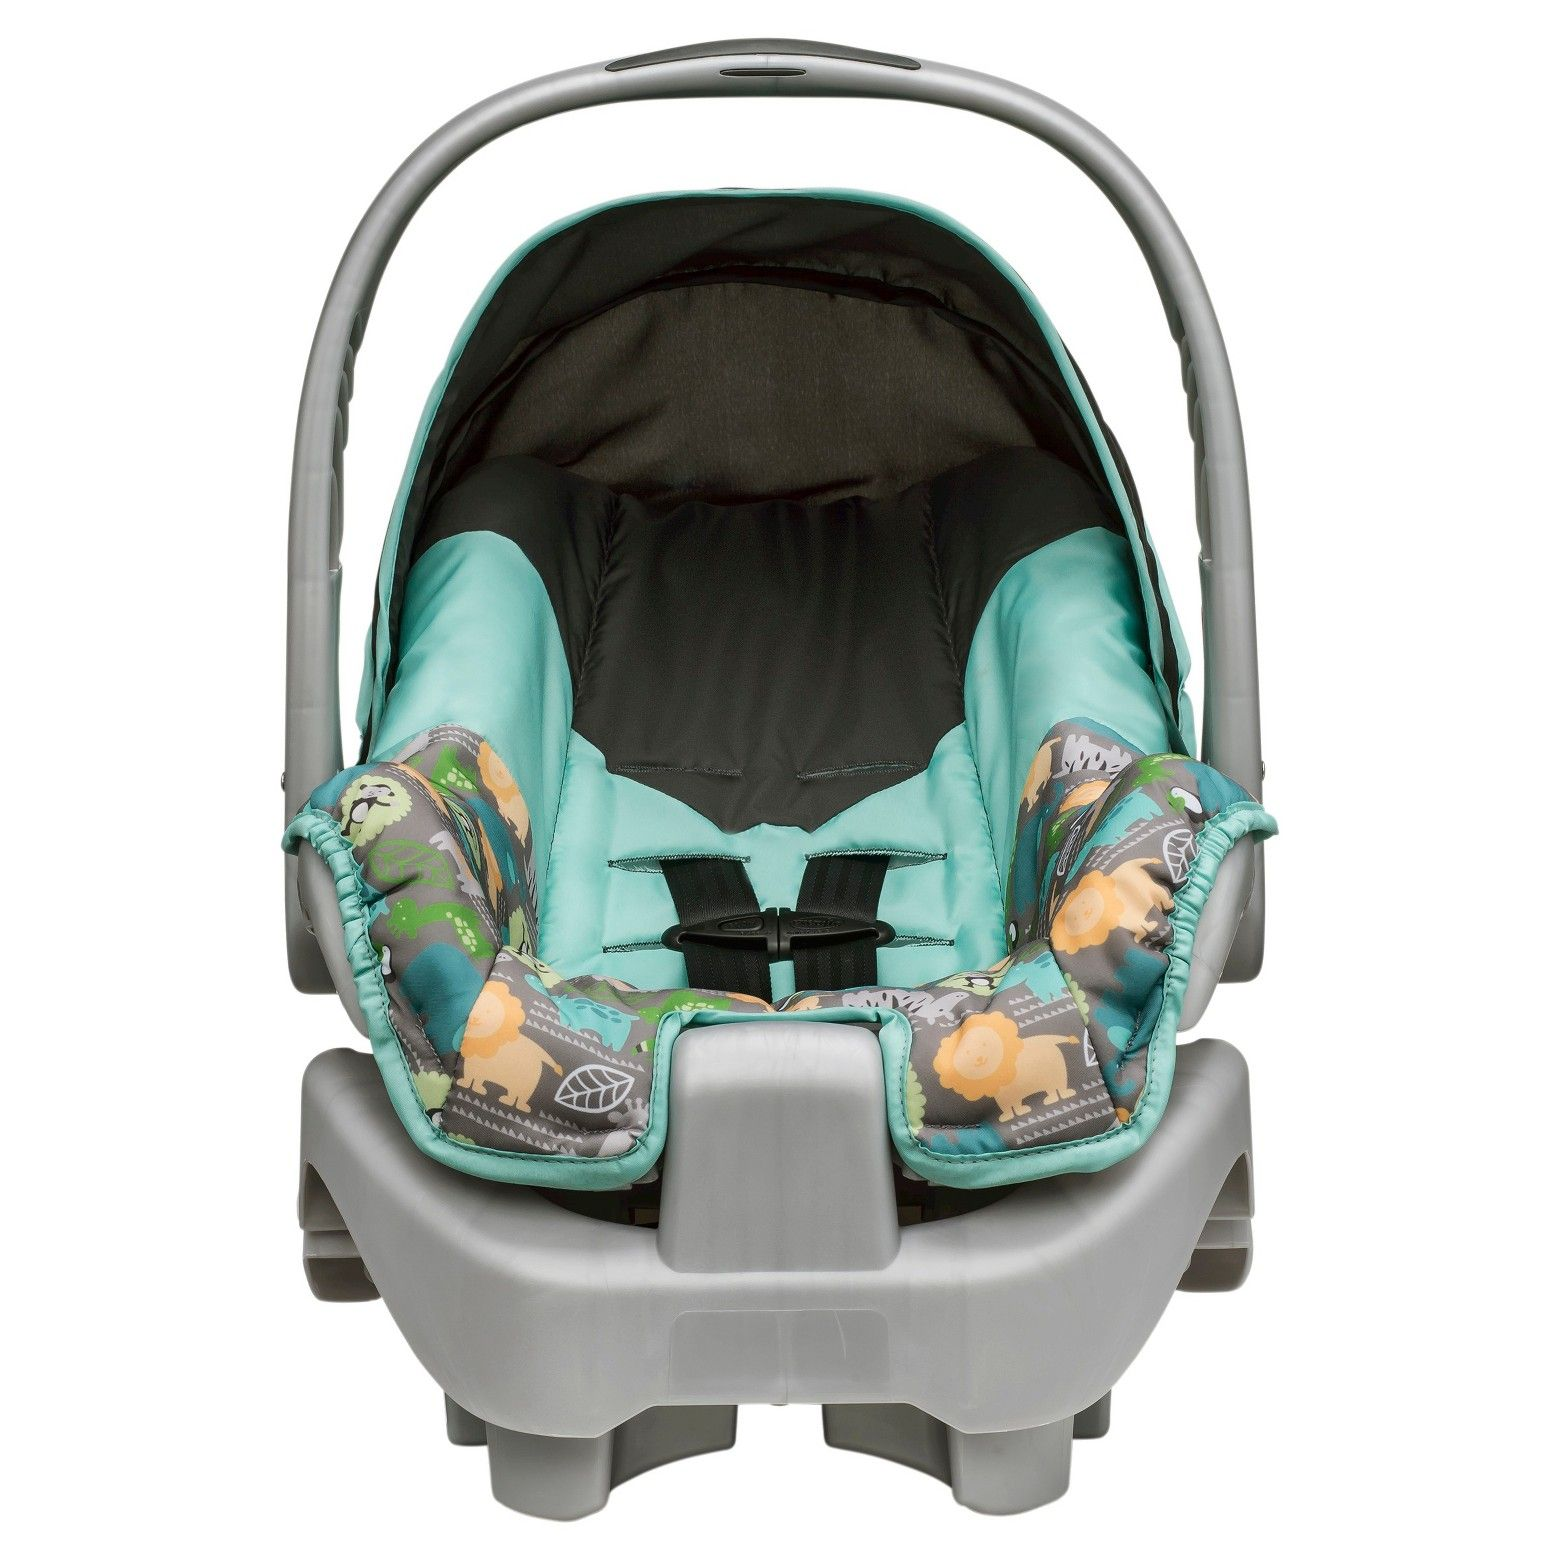 The Evenflo® Nurture™ Infant Car Seat provides comfort for